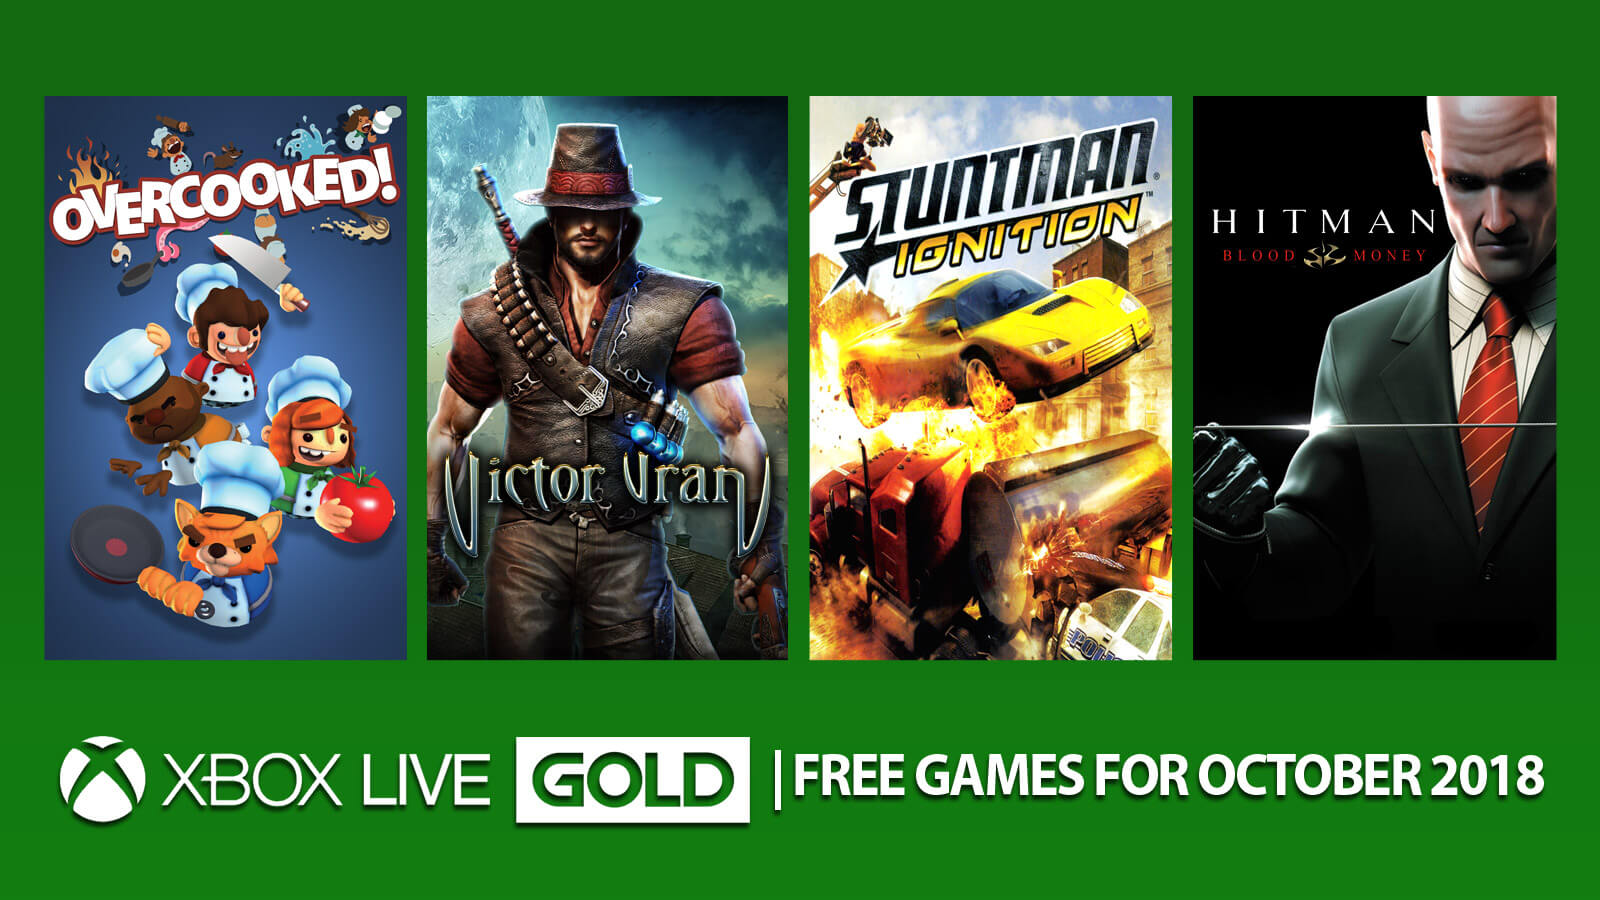 Xbox Live Gold Free Games For October 2018 Gameslaught